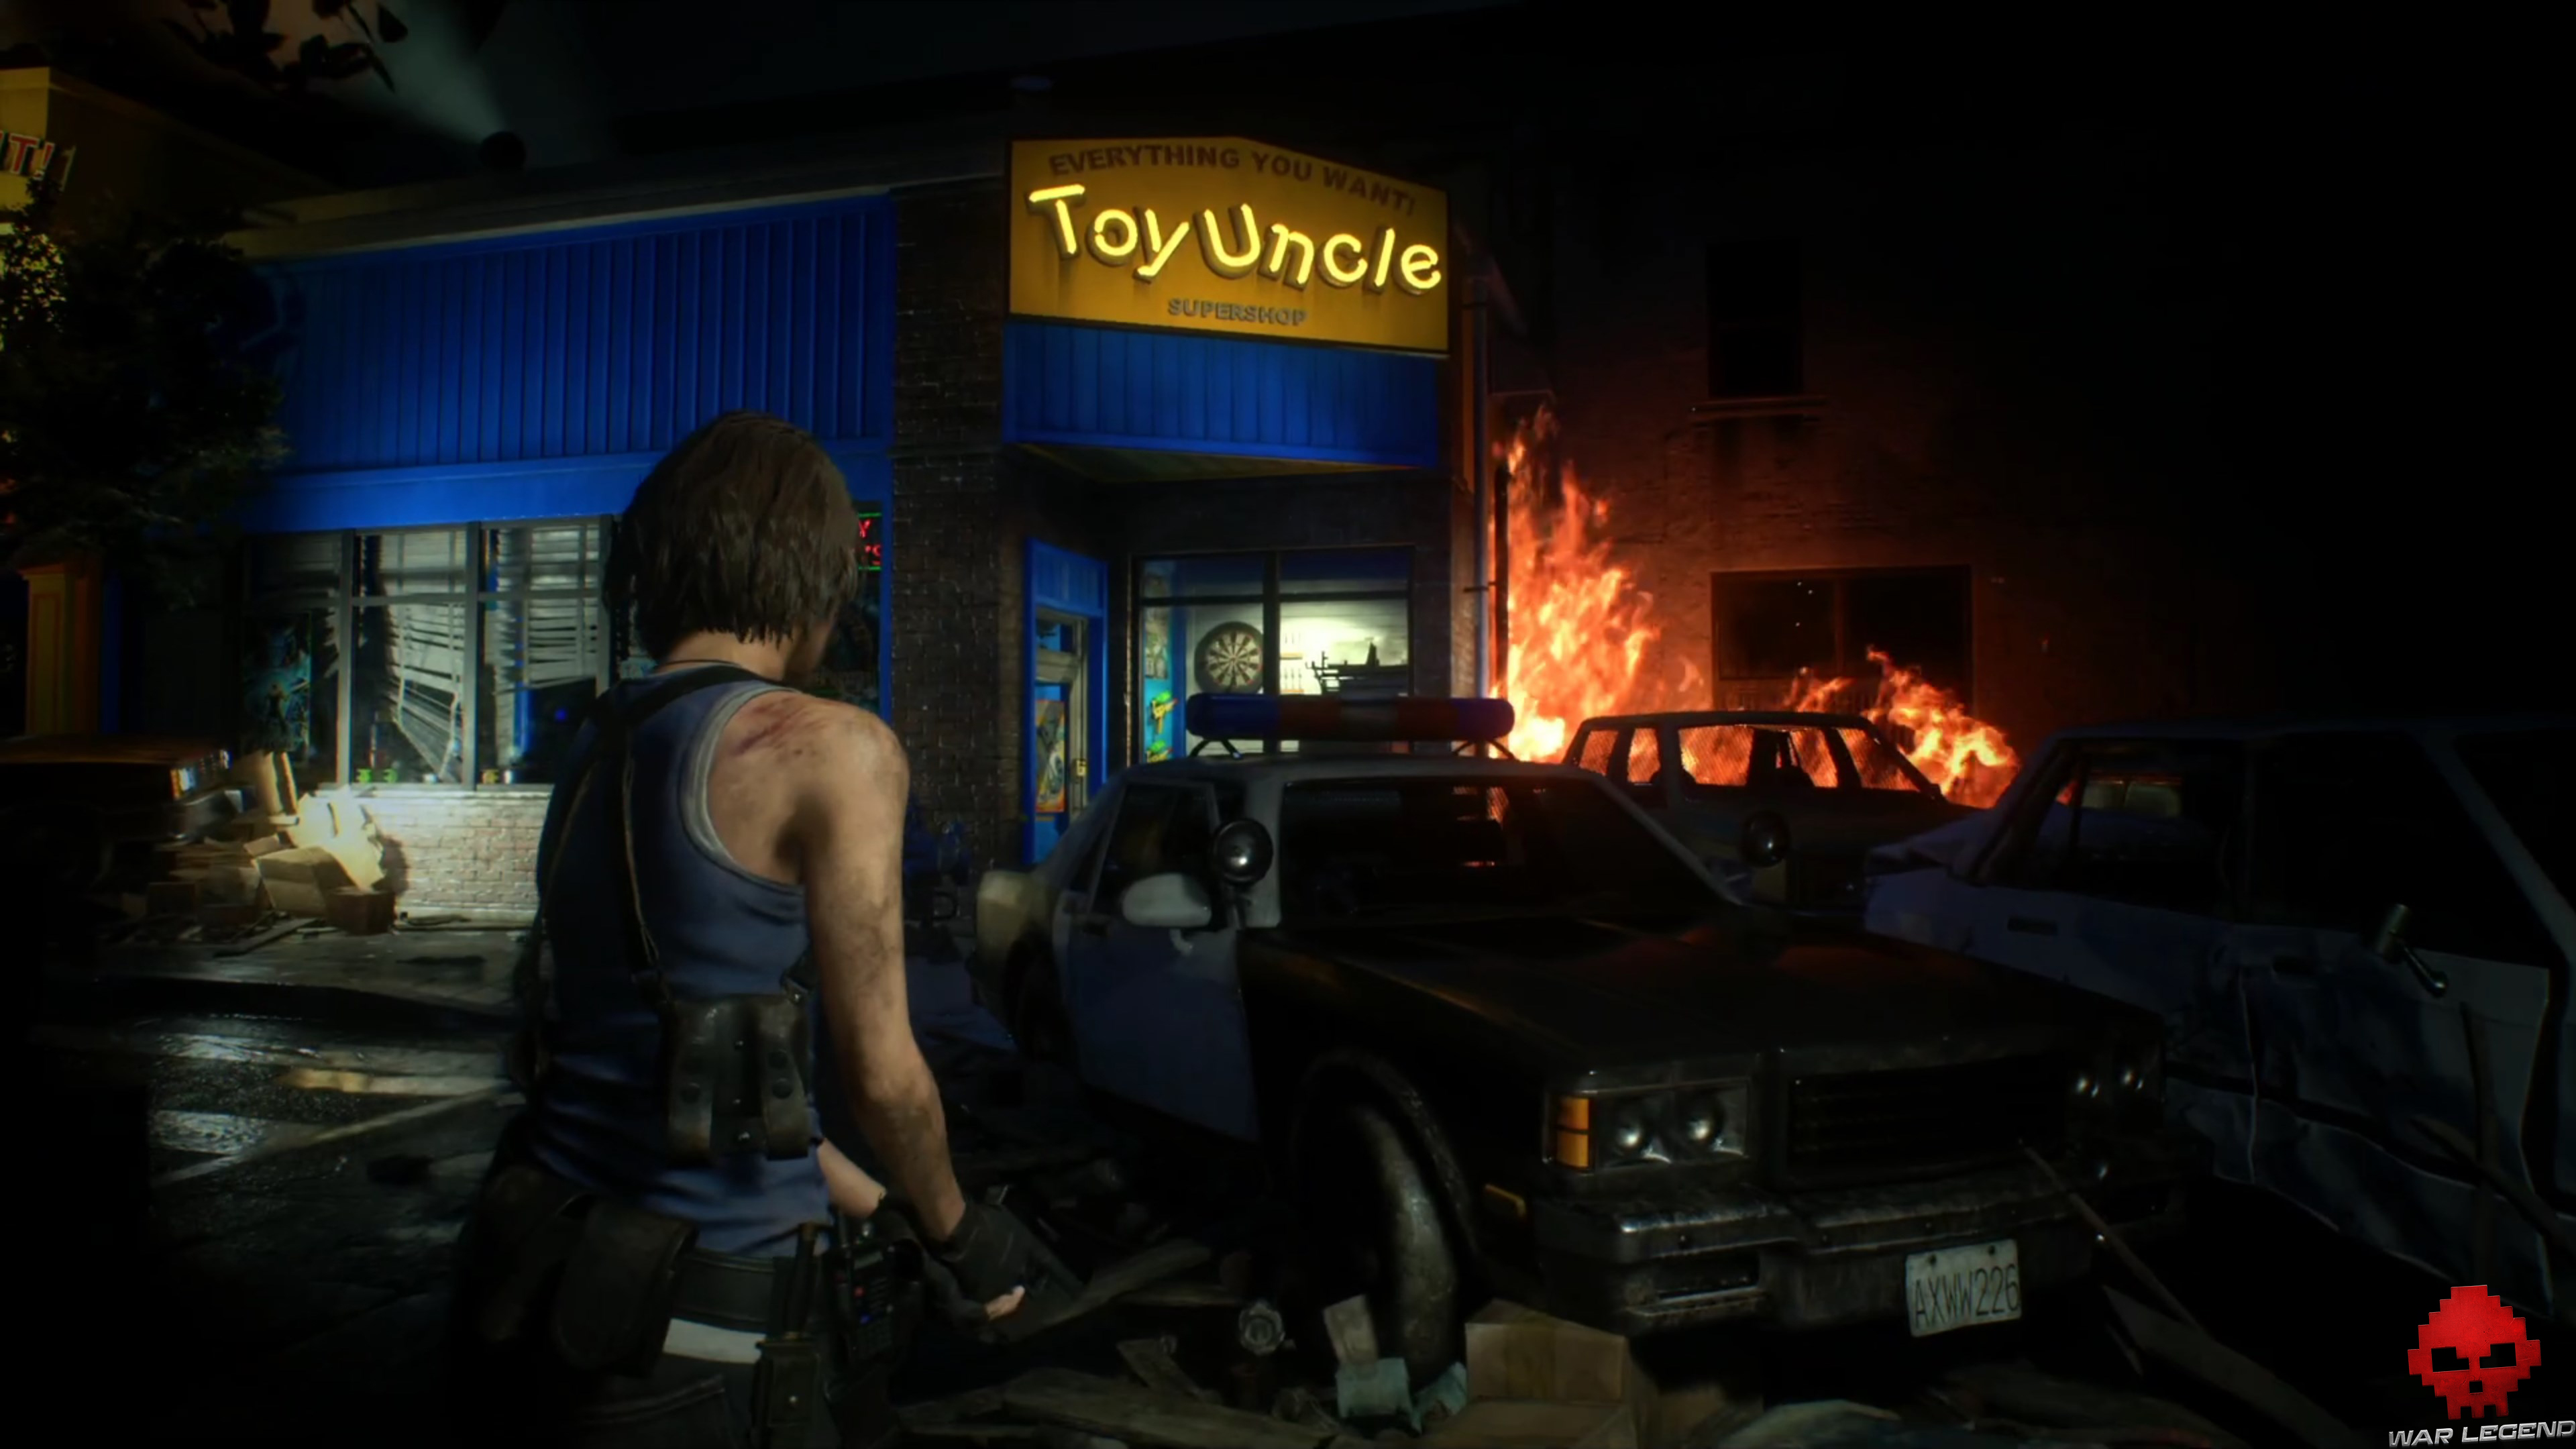 resident evil 3 - magasin toy's uncle